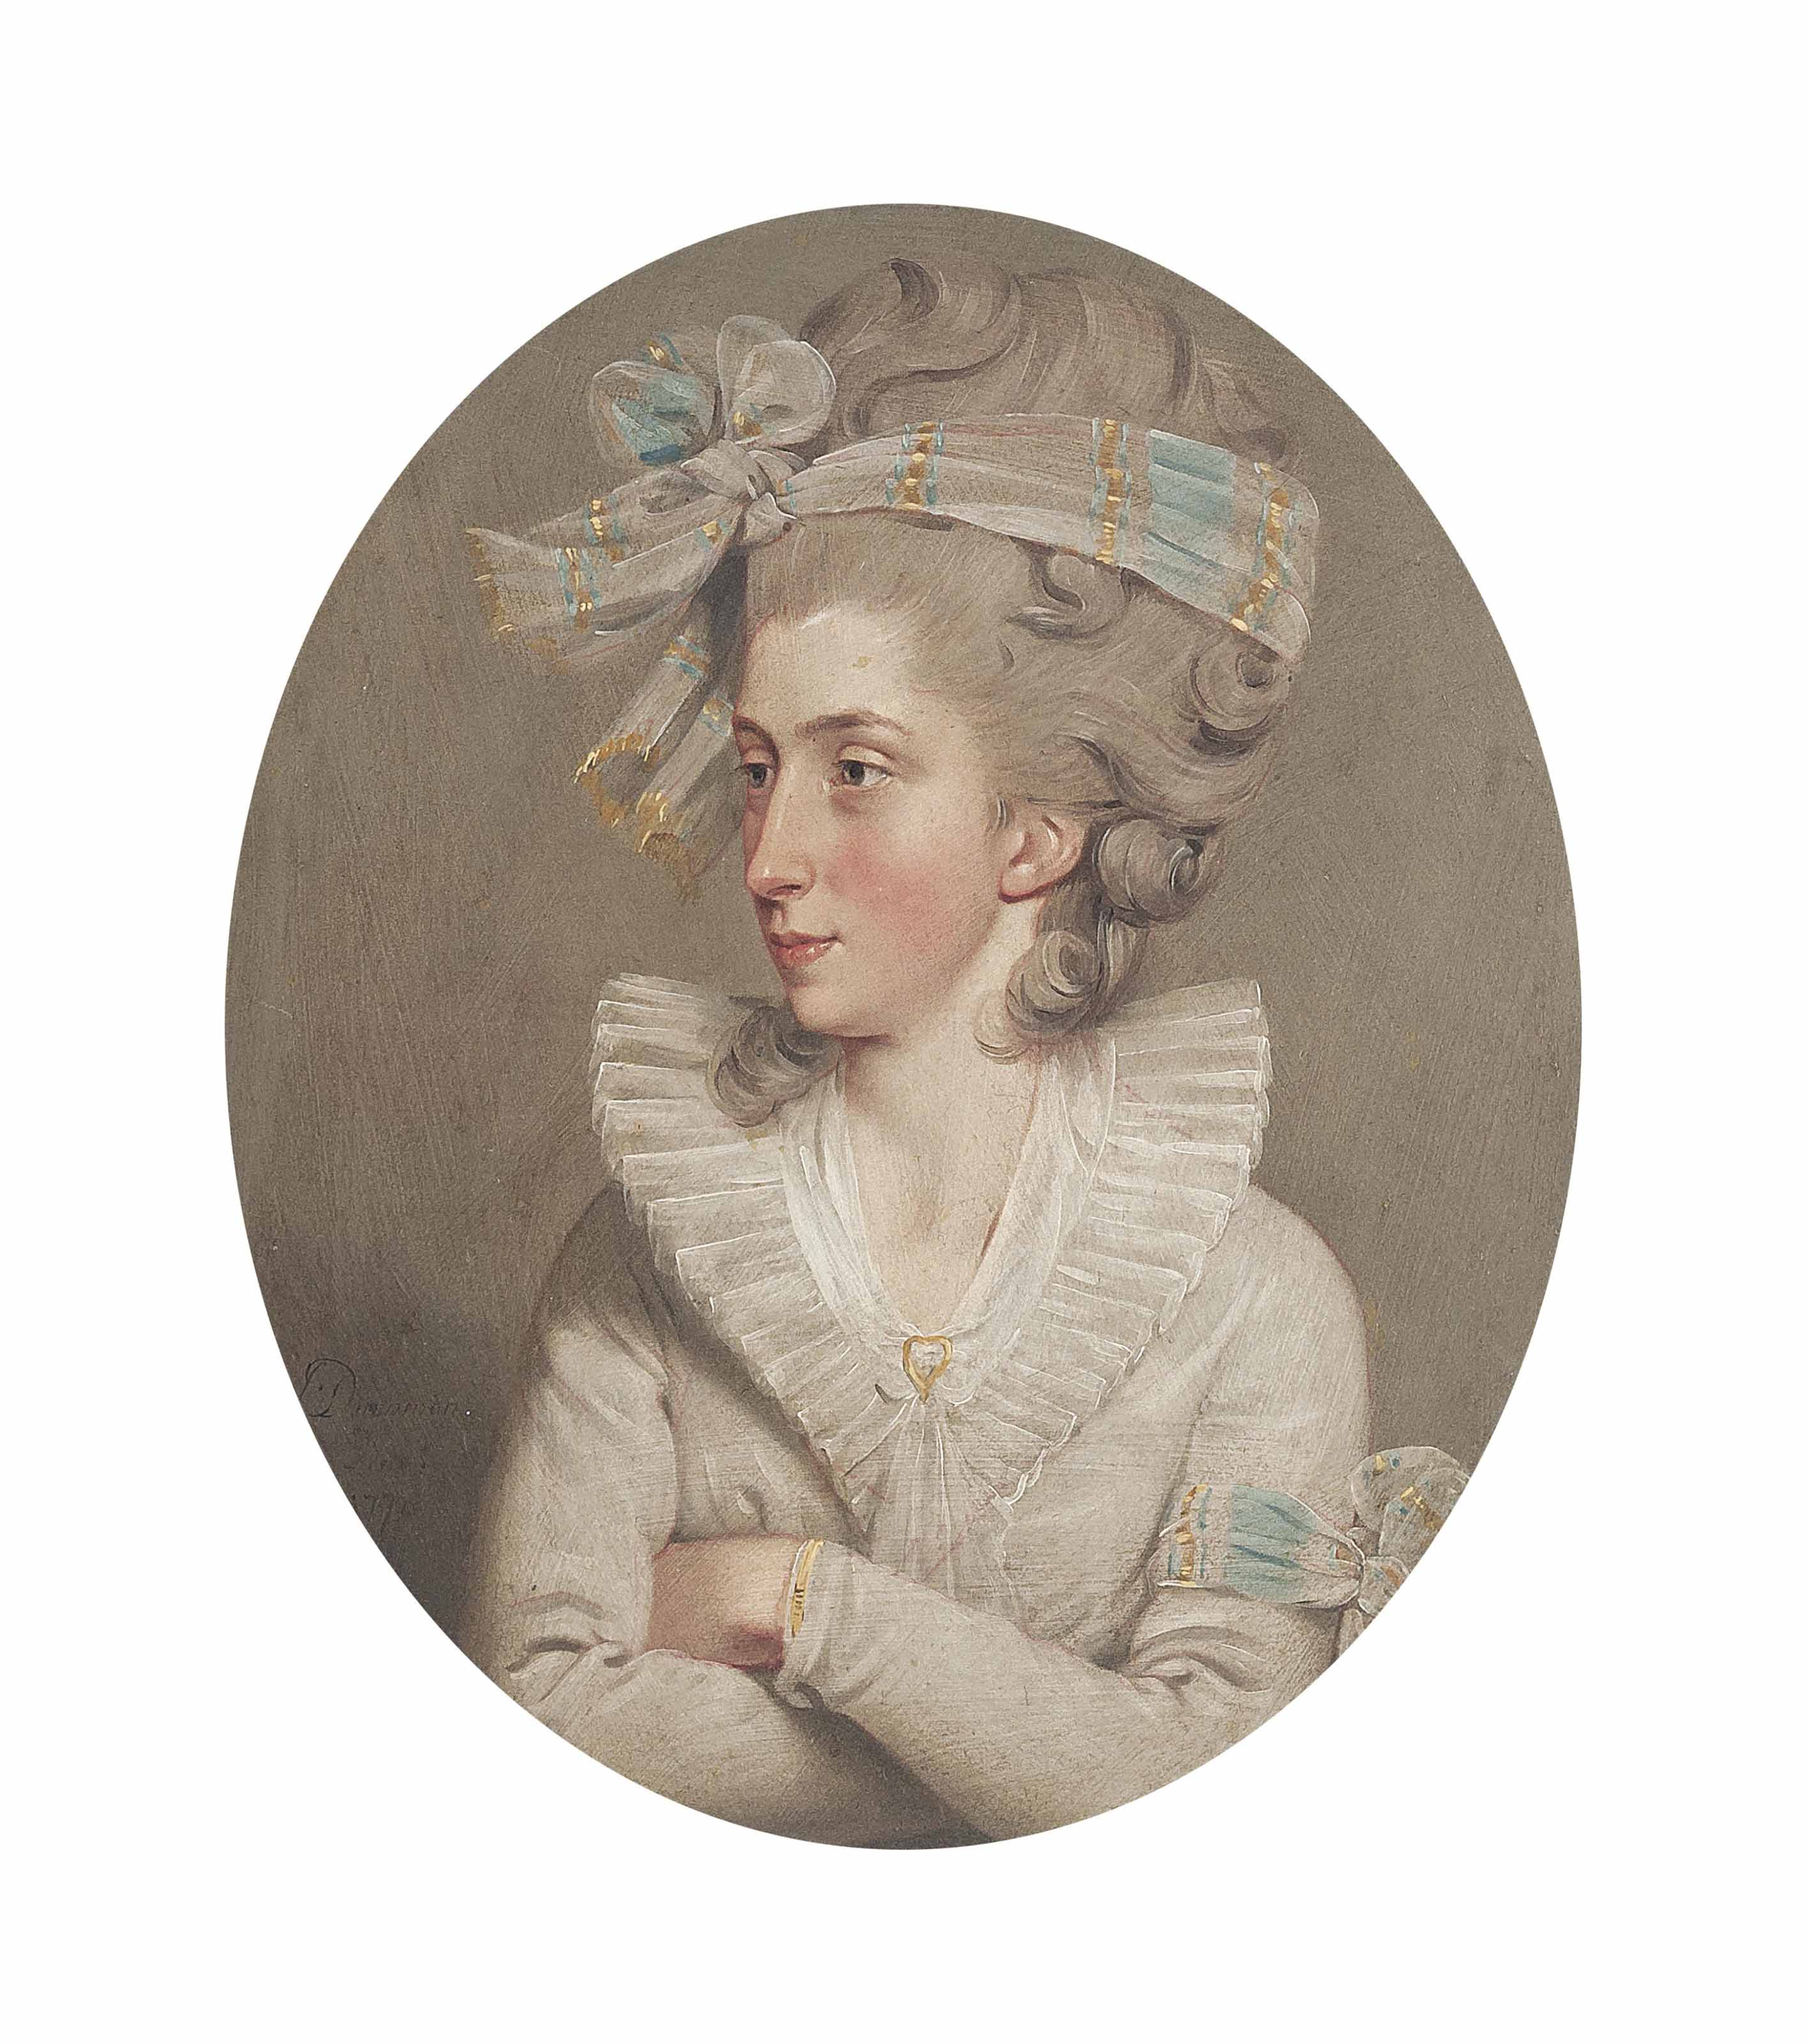 Portrait of Letitia Anna Philippa Pervis, bust-length, in a white dress